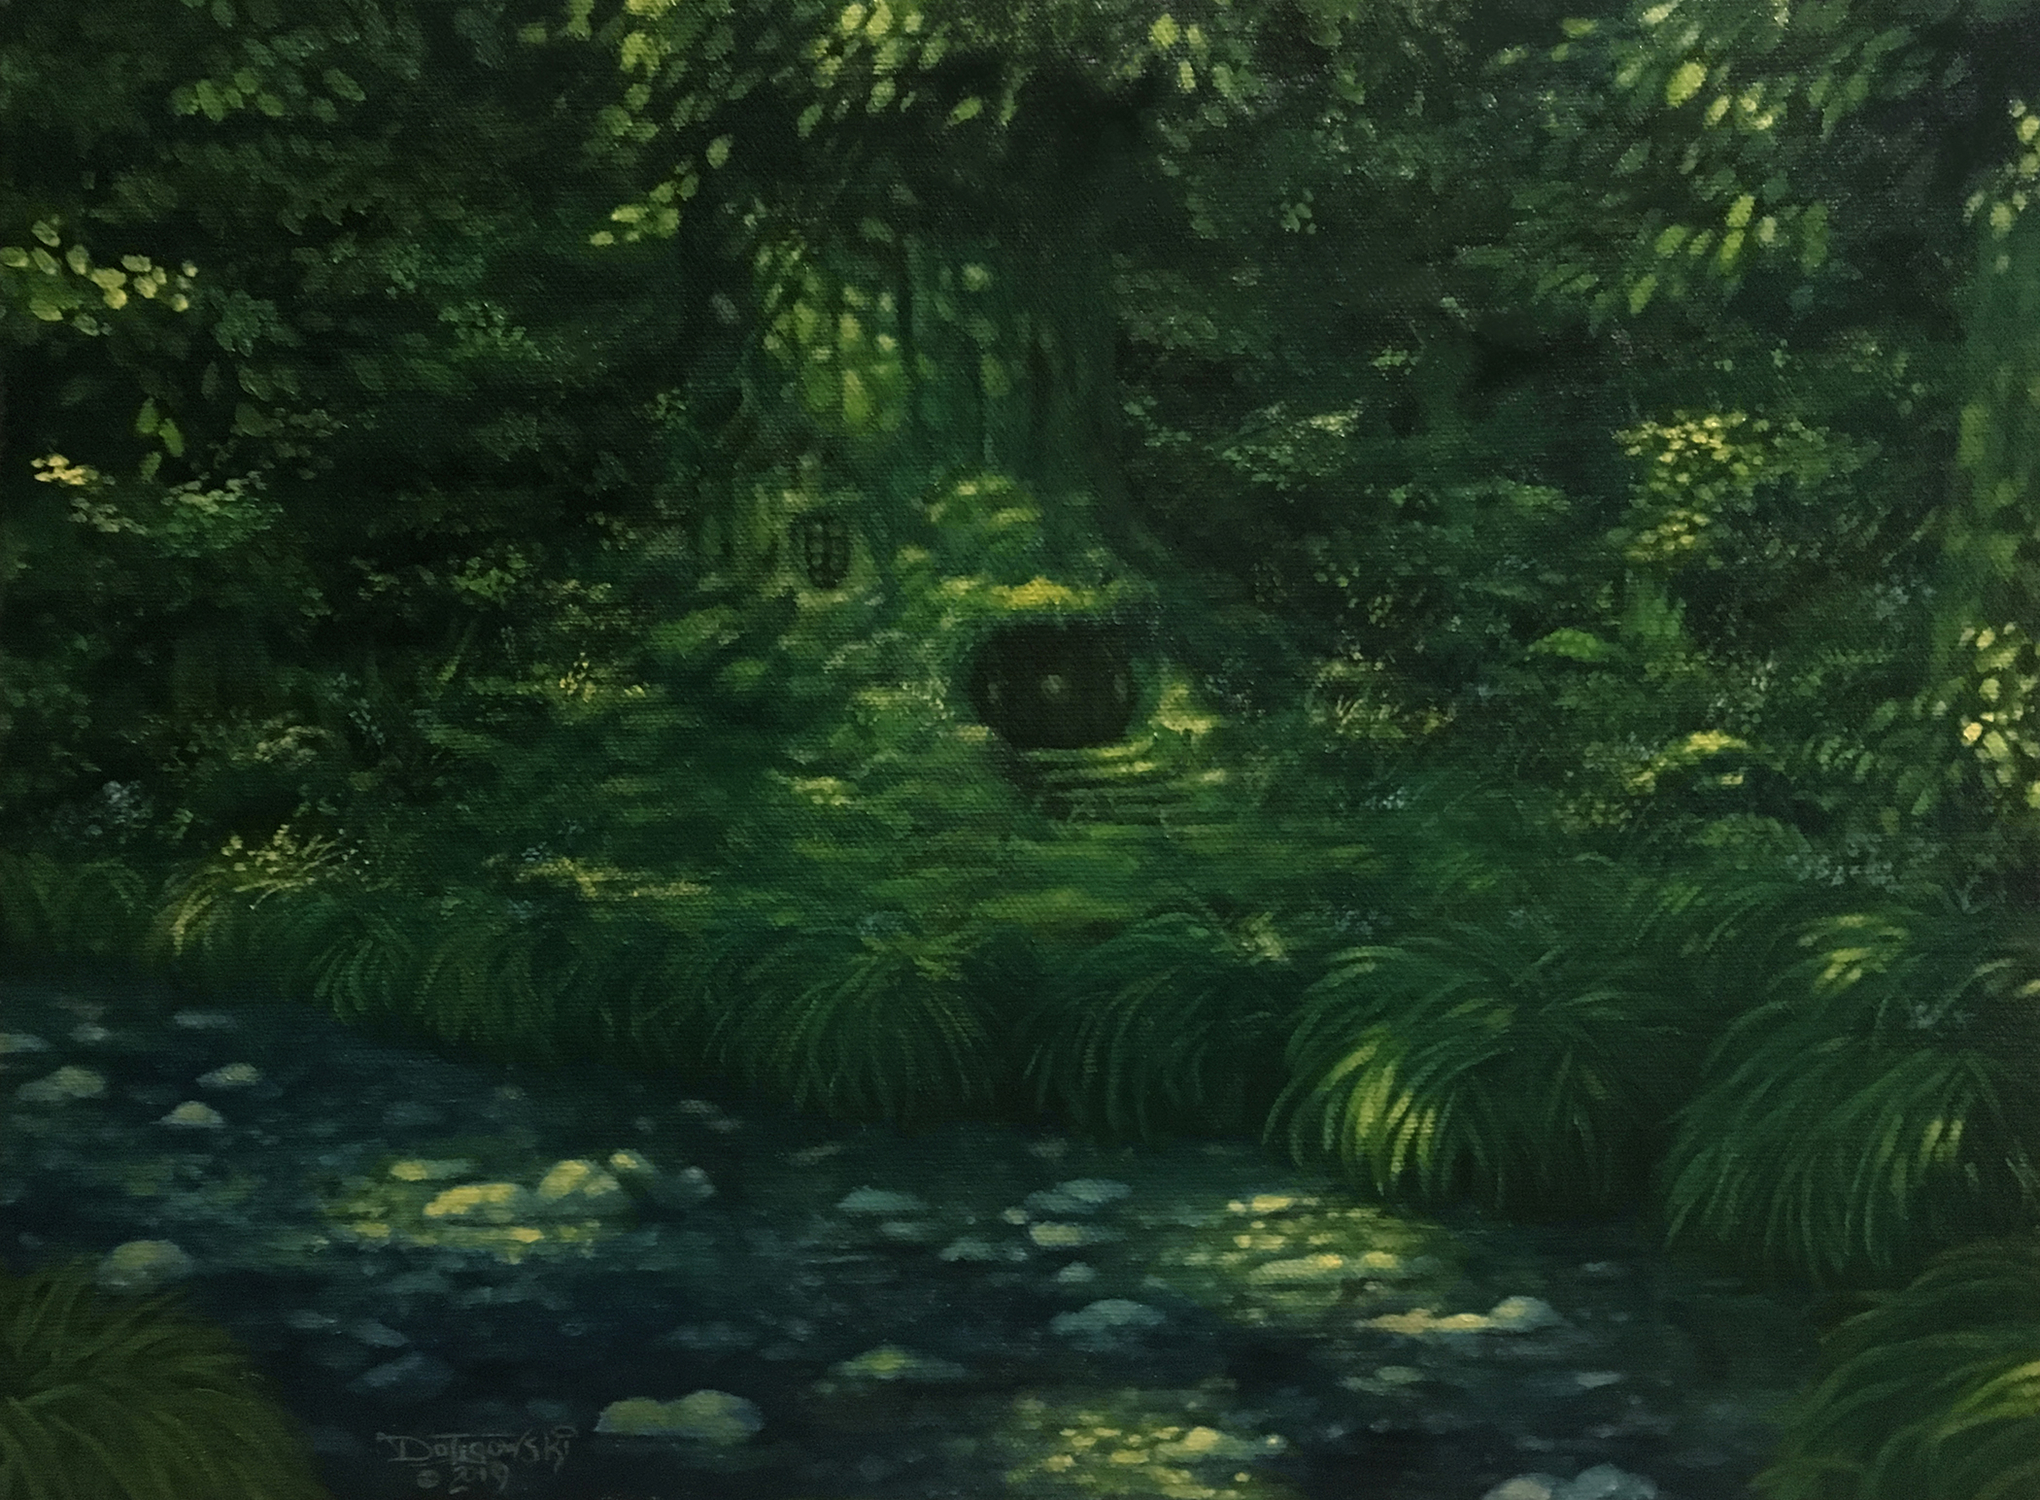 Hole in the Woods Artwork by John Dotegowski